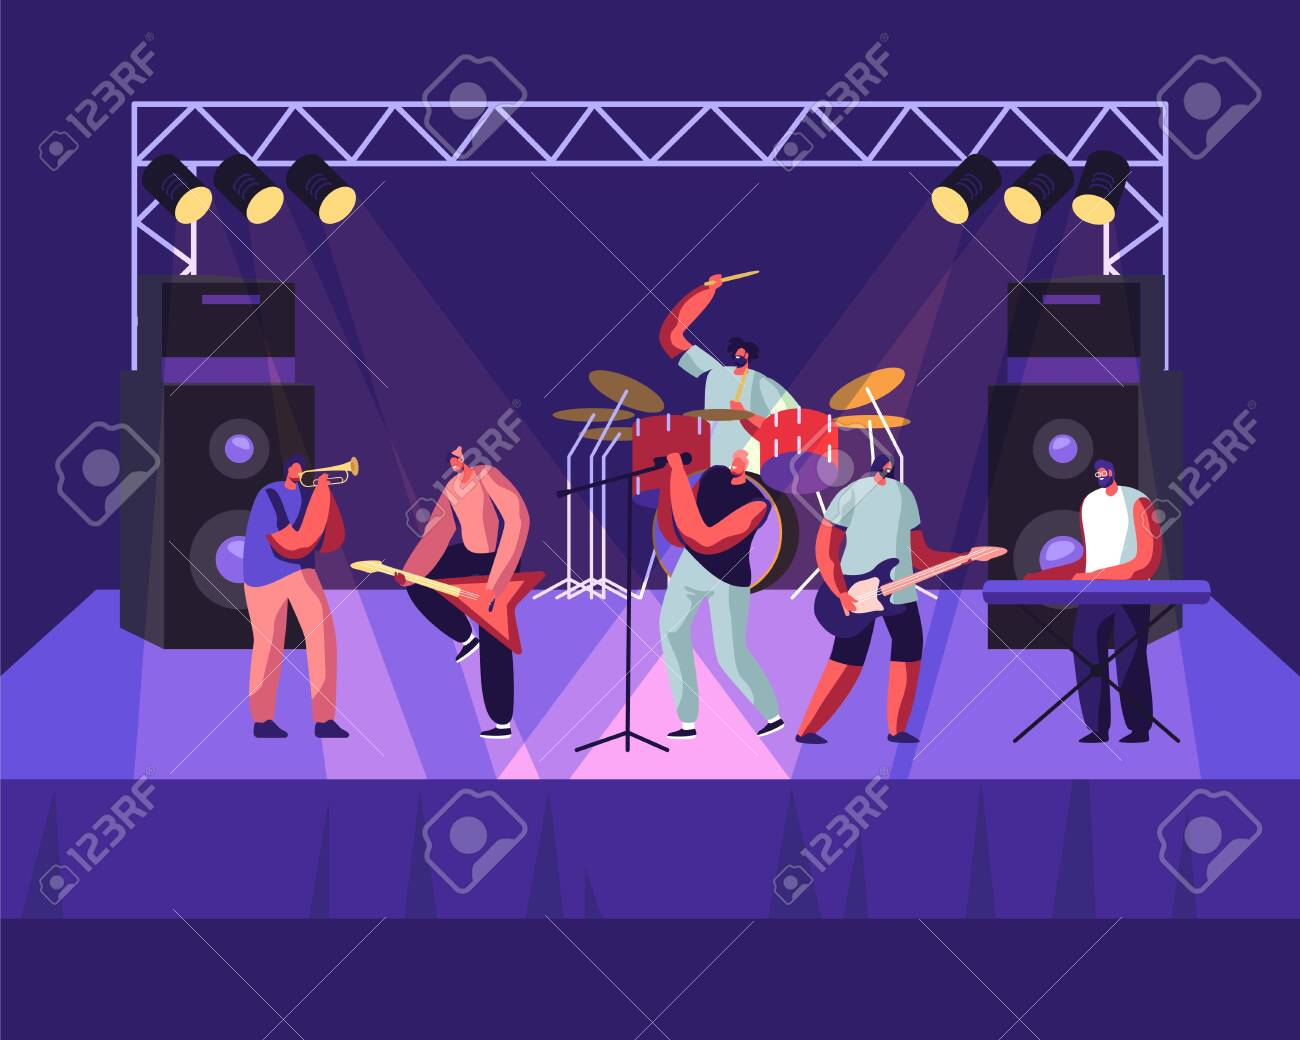 Rock Band Performing on Stage. Electric Guitarists, Drummer, Singer, Trumpeter Music Concert. Men Artists in Rocking Outfit Playing with Musical Instruments, Show. Cartoon Flat Vector Illustration - 128442716